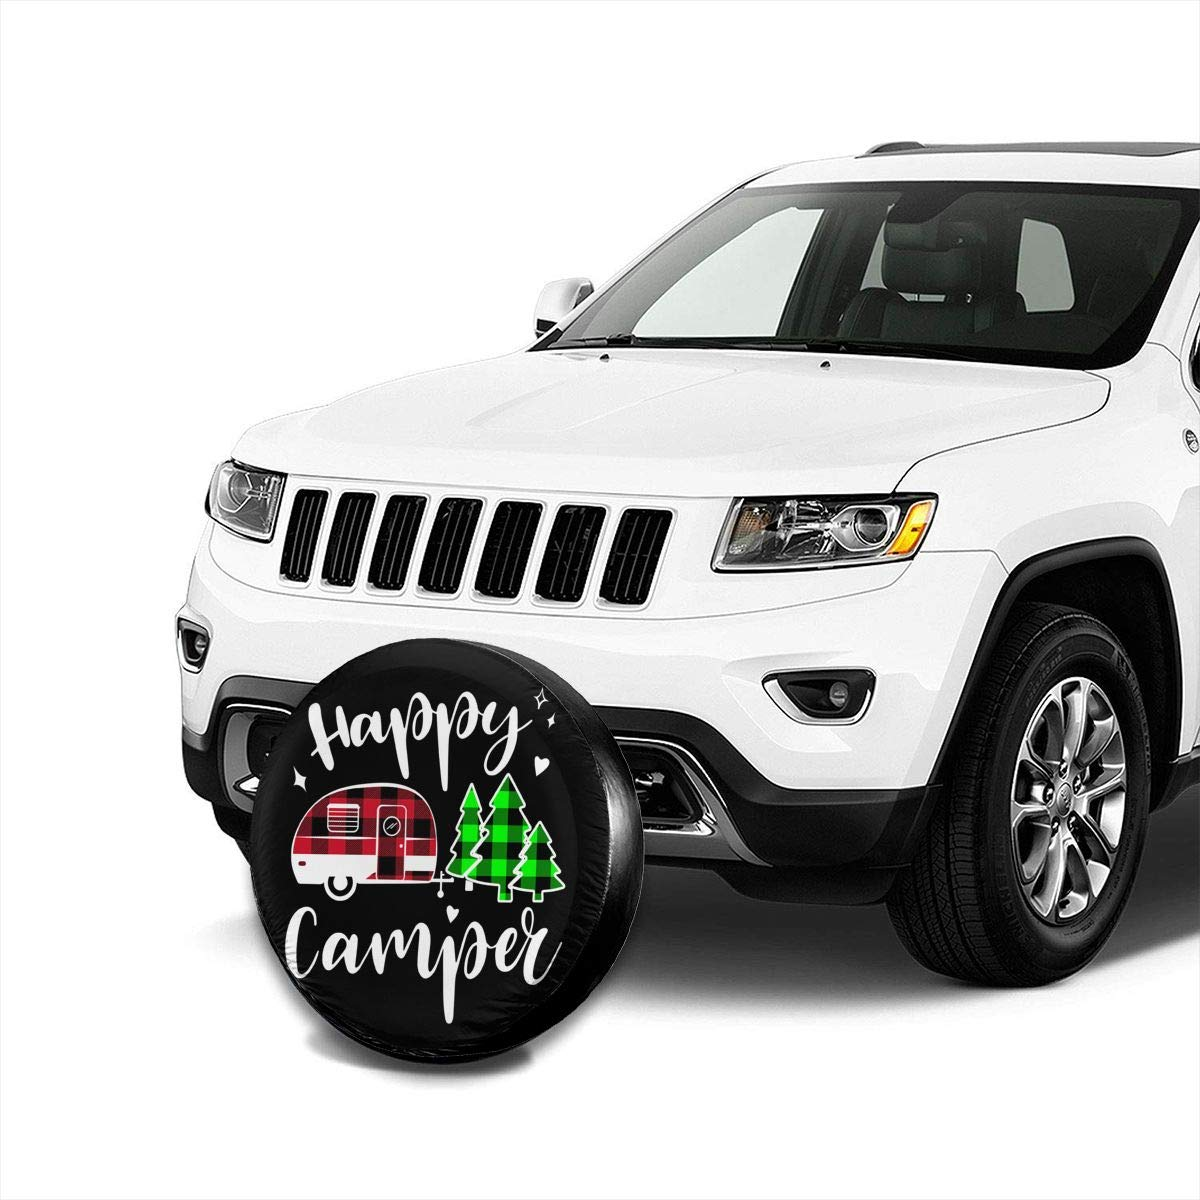 RV SUV and Many Vehicle 14 15 16 17 Happy Camping Camper Buffalo Plaid Spare Wheel Tire Cover Waterproof Dust-Proof Fit for Trailer